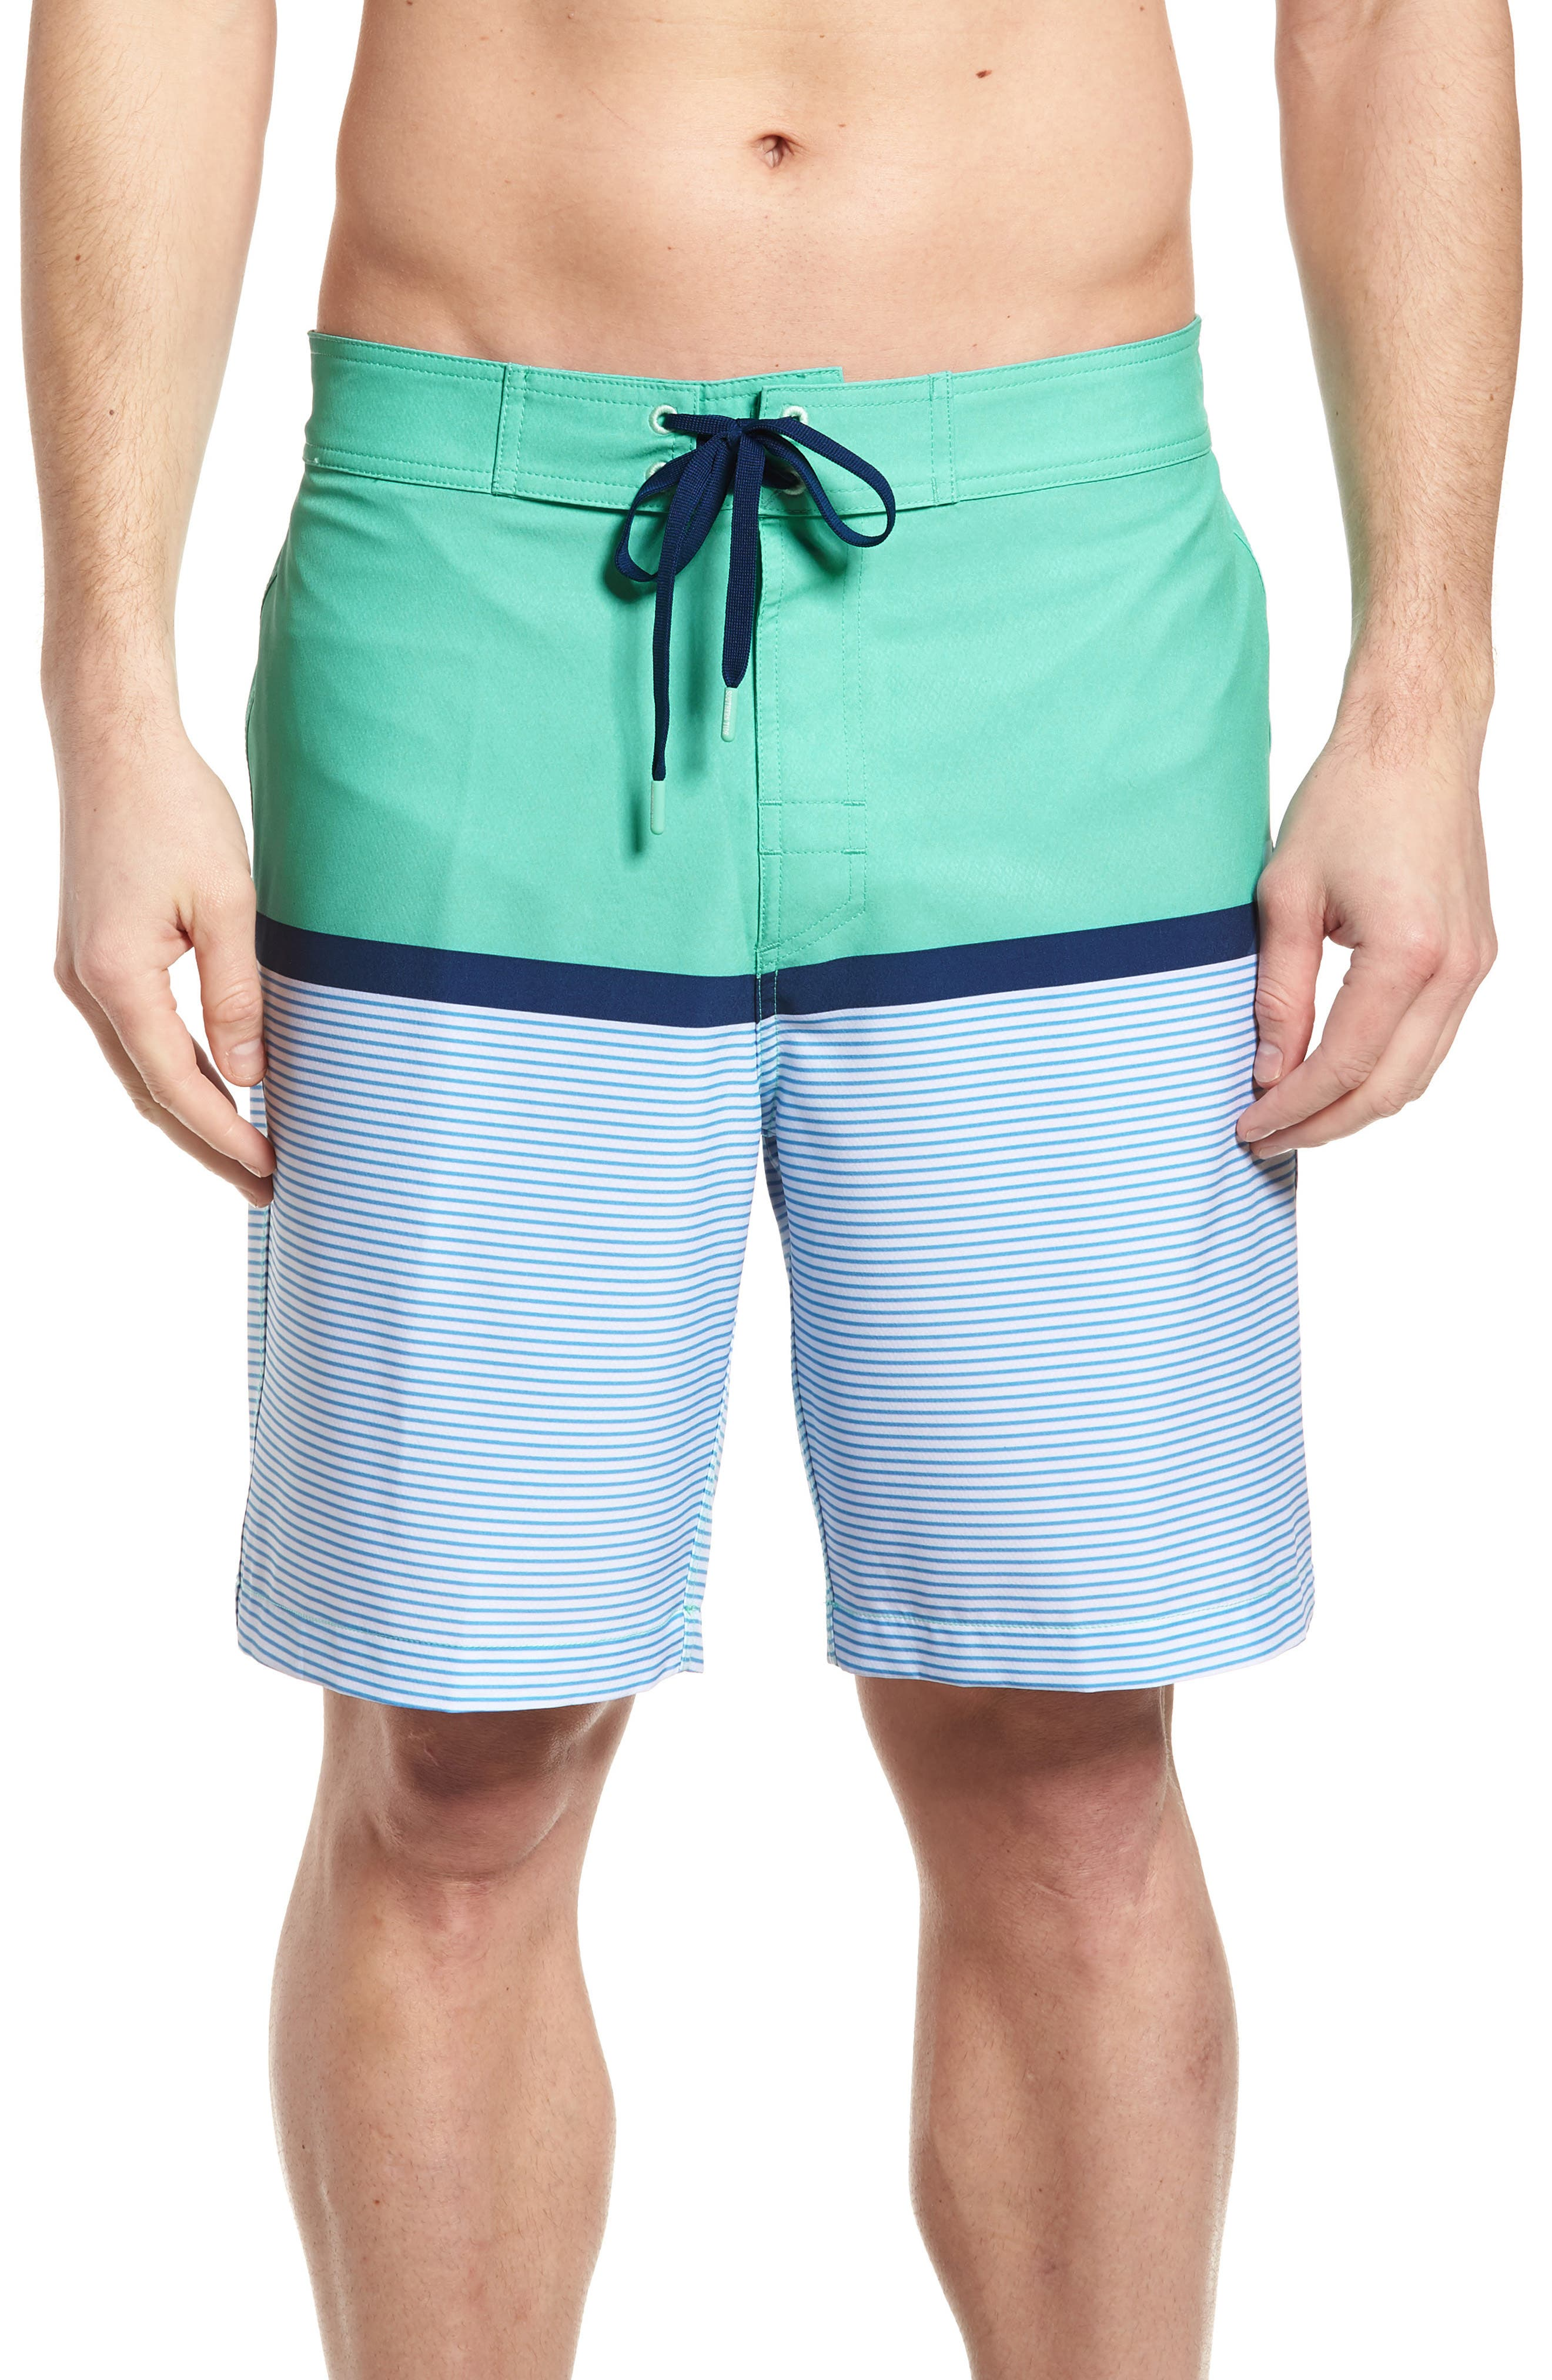 Alternate Image 1 Selected - Southern Tide Blue Lagoon Swim Trunks